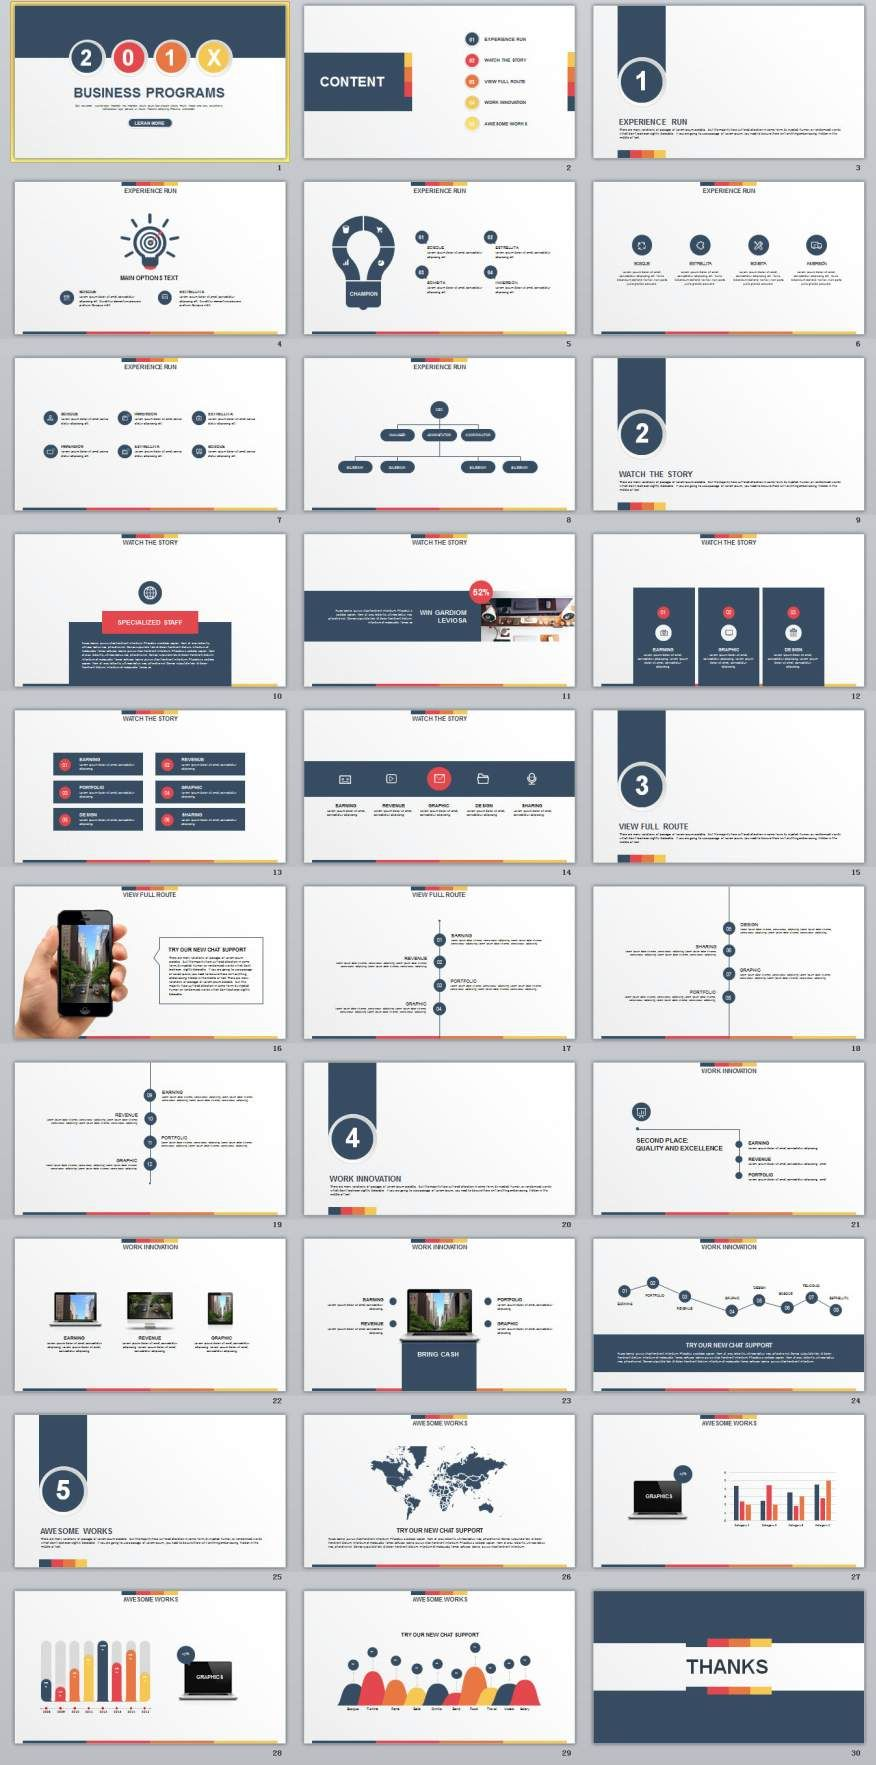 Design Programs 30 Multicolor Business Programs Powerpoint Template